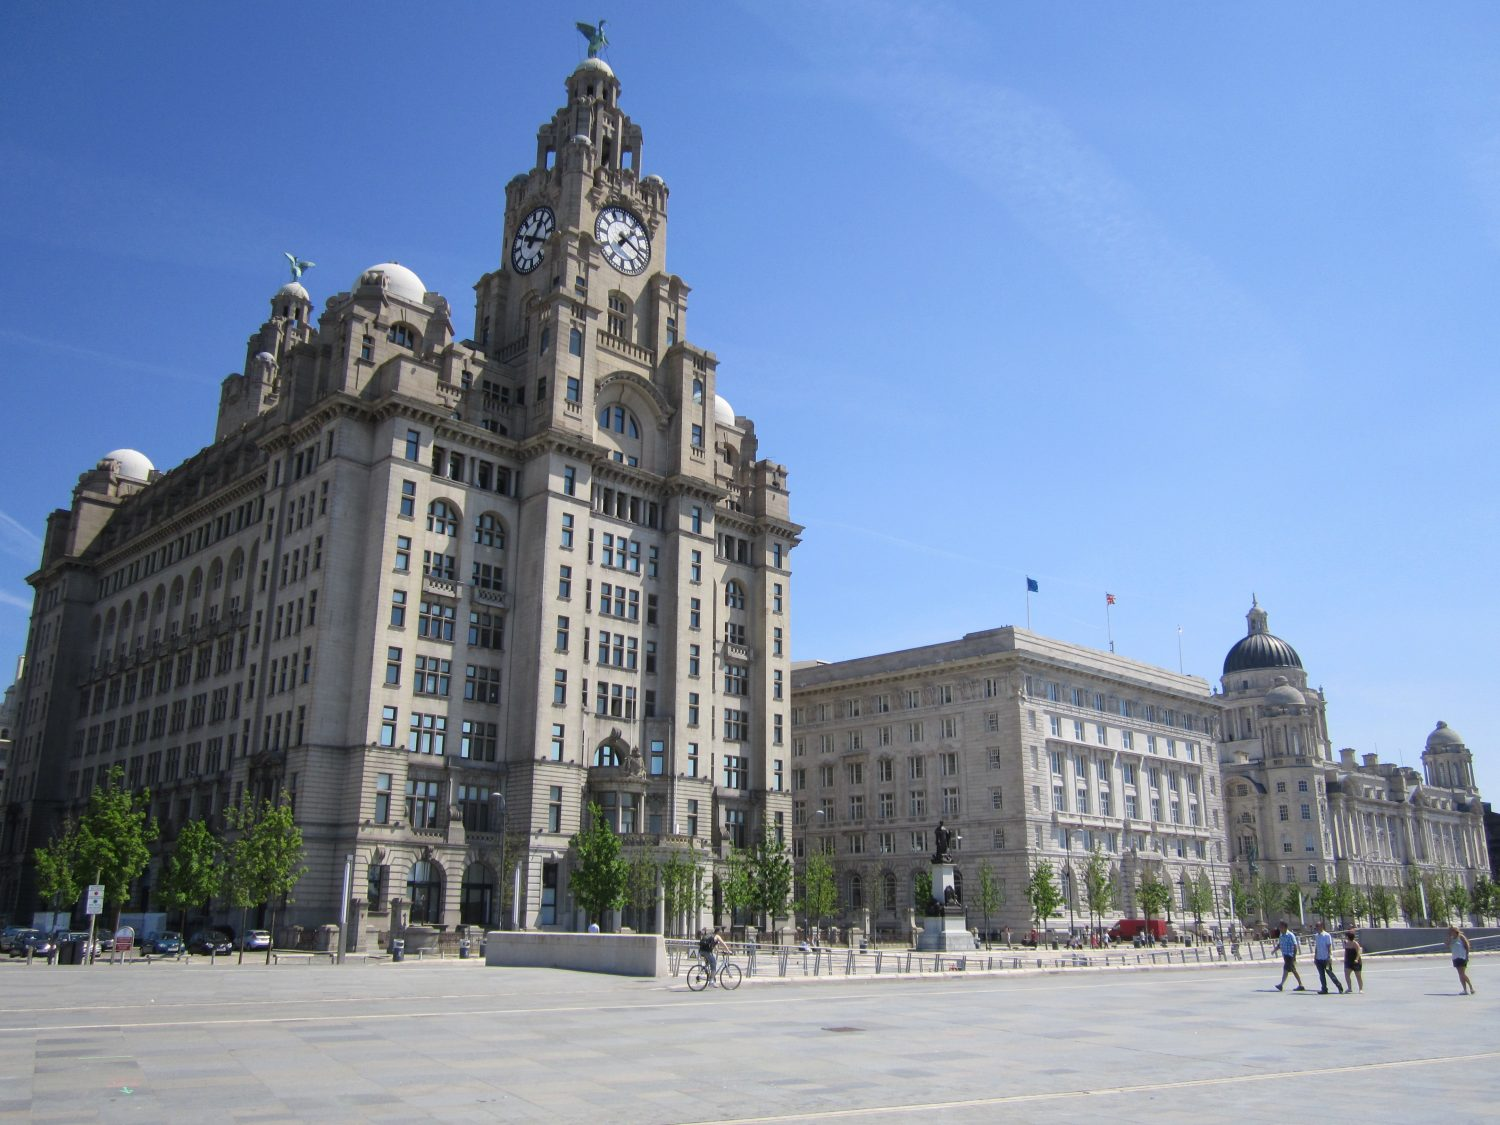 The_Three_Graces,_Liverpool_-_2012-05-27